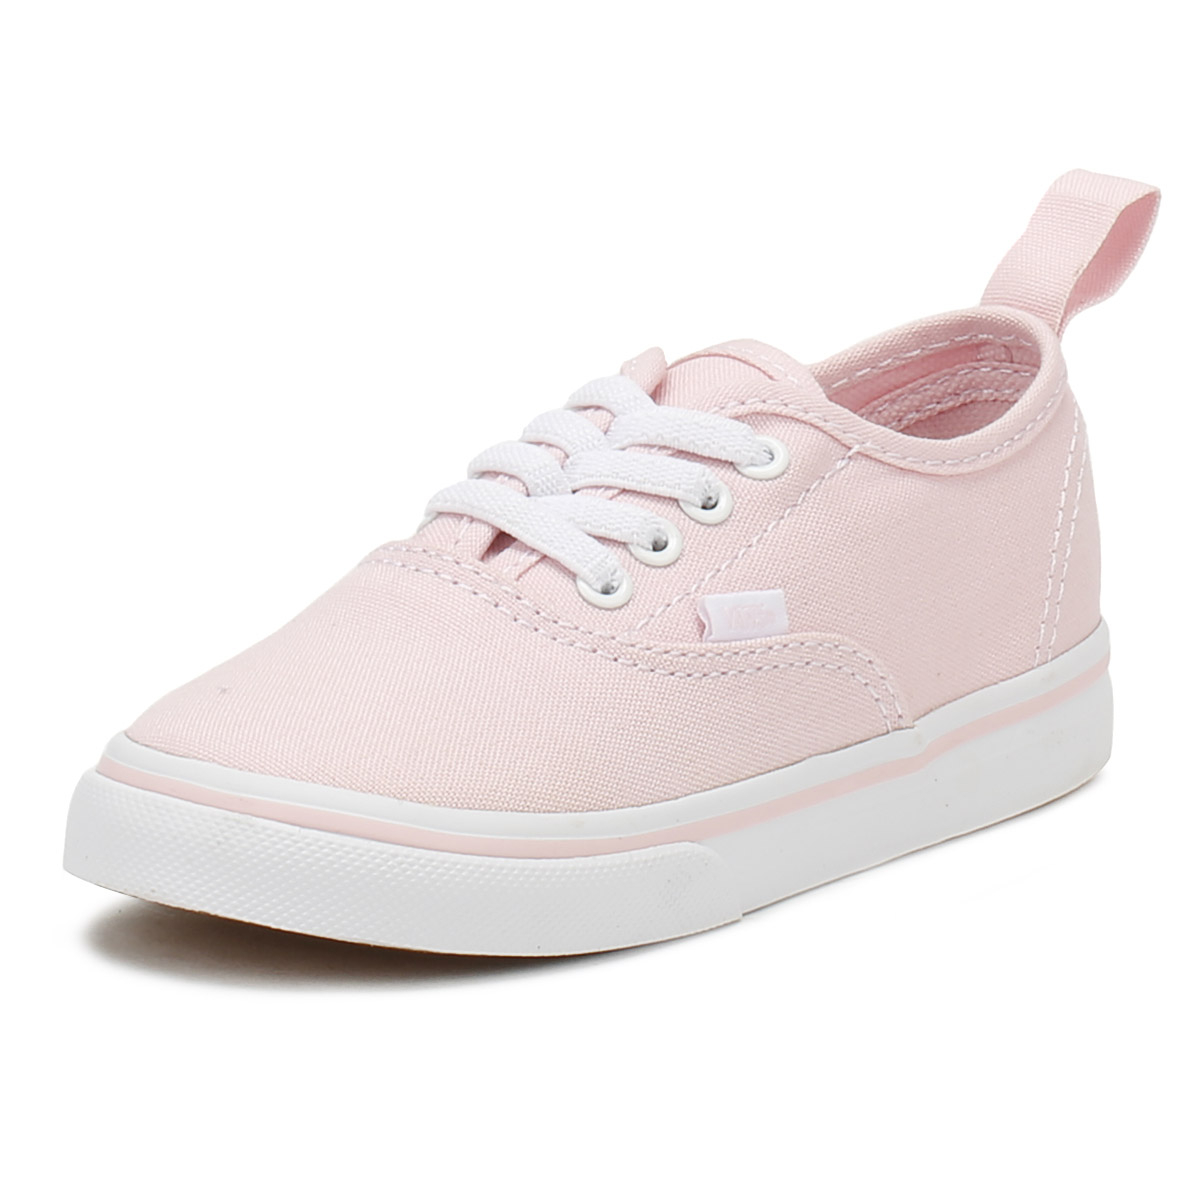 a3f7028281750 Vans Toddlers Trainers Chalk Pink & True White Authentic Kids Skate Shoes